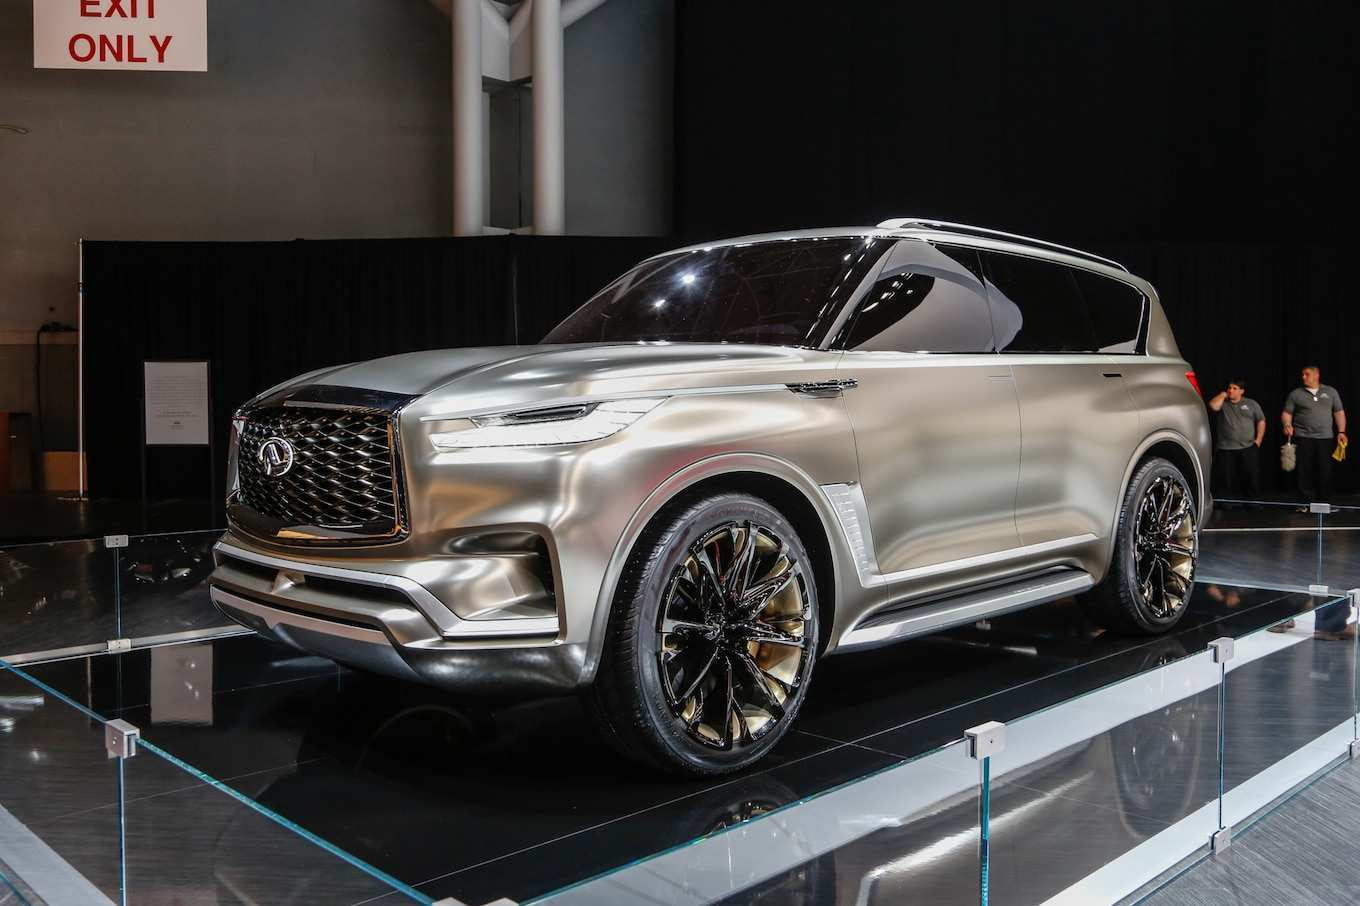 29 All New New Infiniti Qx80 2020 Images